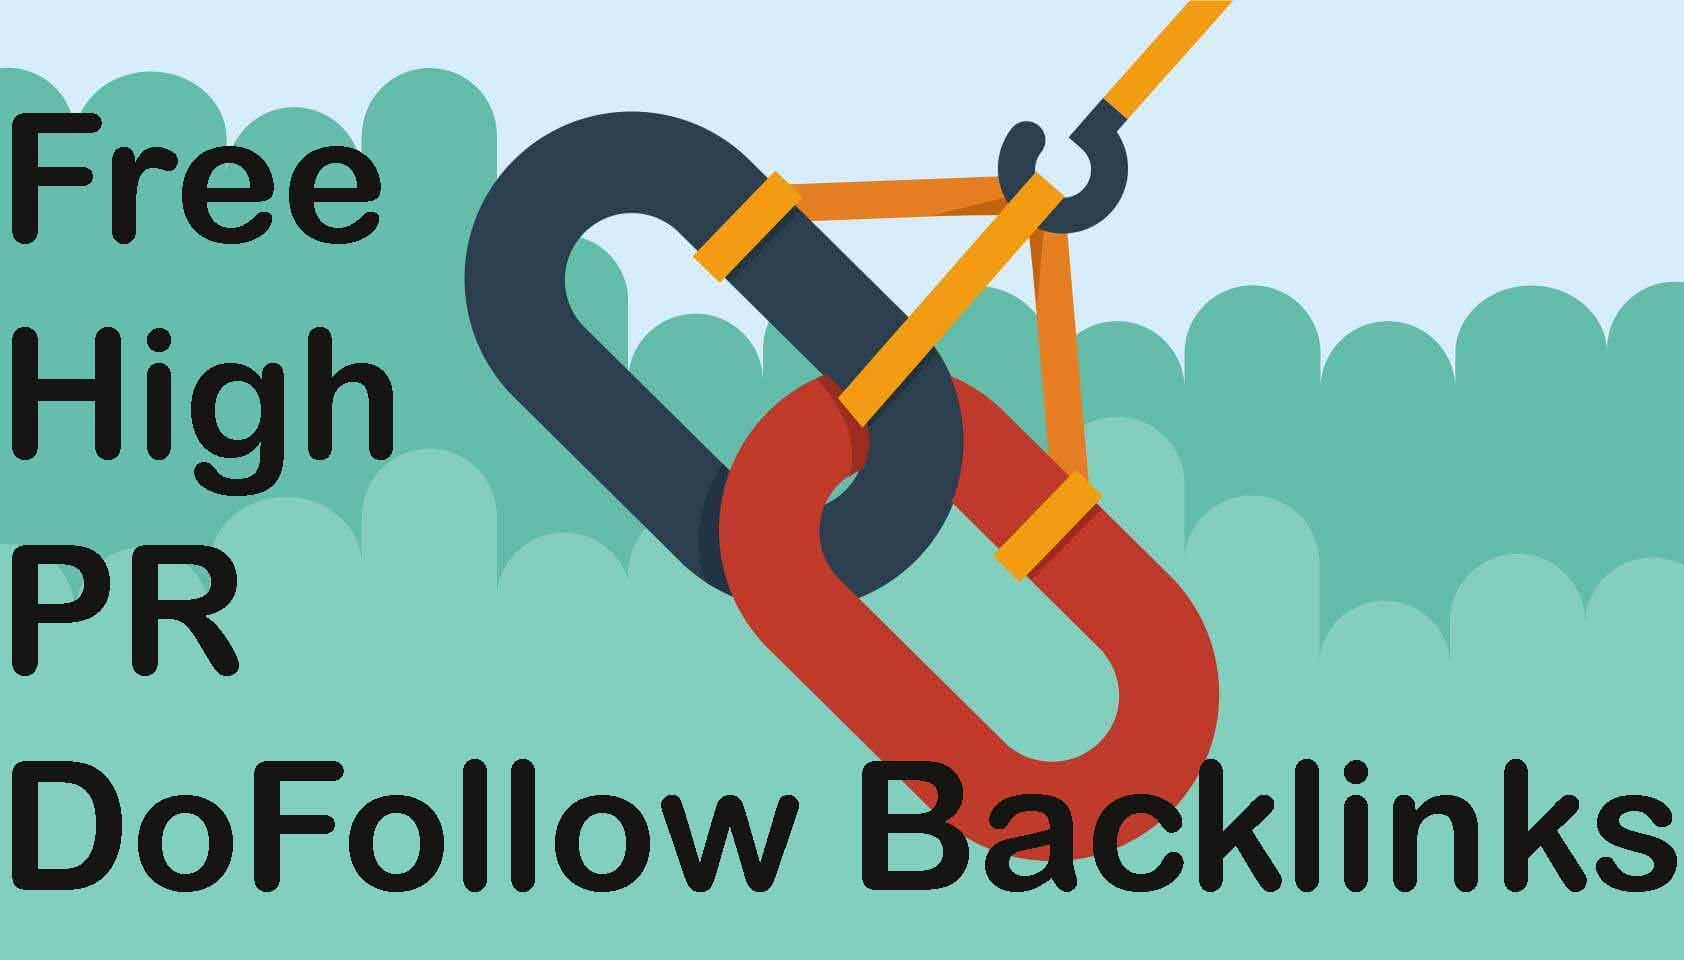 How To Get Free High PR DoFollow Backlinks Latest